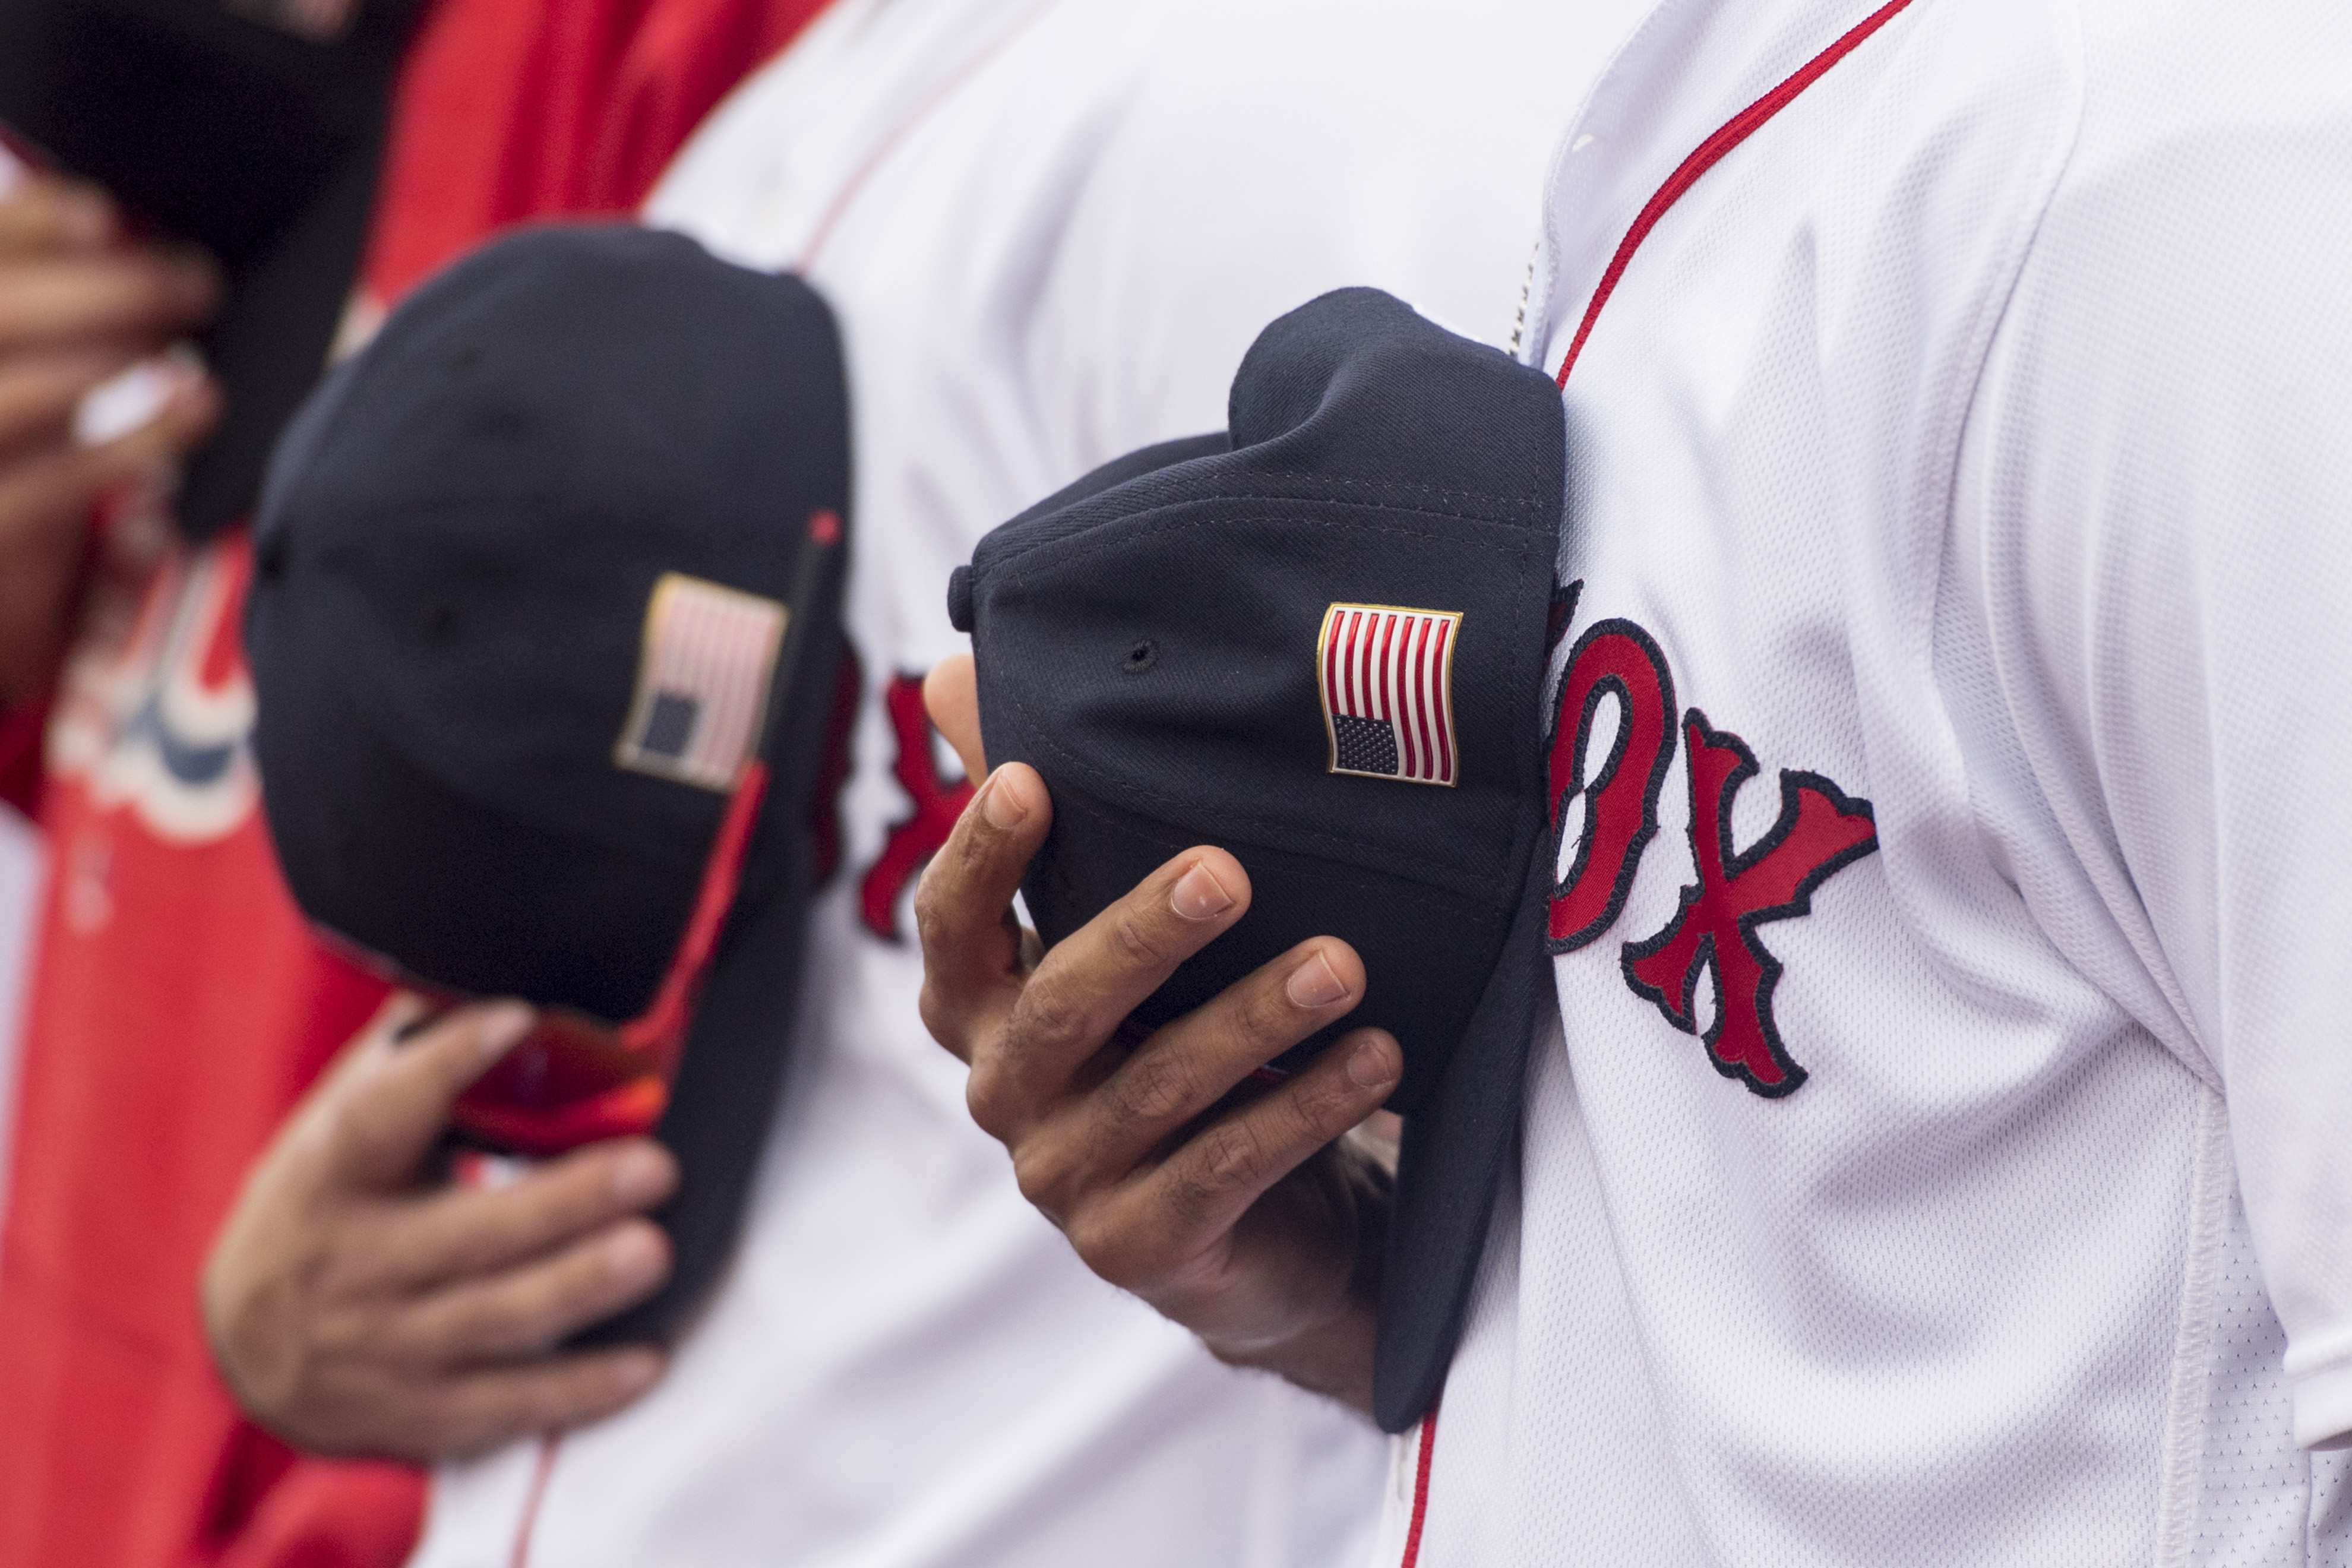 An American flag patch is shown on a cap before a game between the Boston Red Sox and the Tampa Bay Rays on September 10, 2017 at Fenway Park in Boston, Massachusetts. (Photo by Billie Weiss/Boston Red Sox/Getty Images)